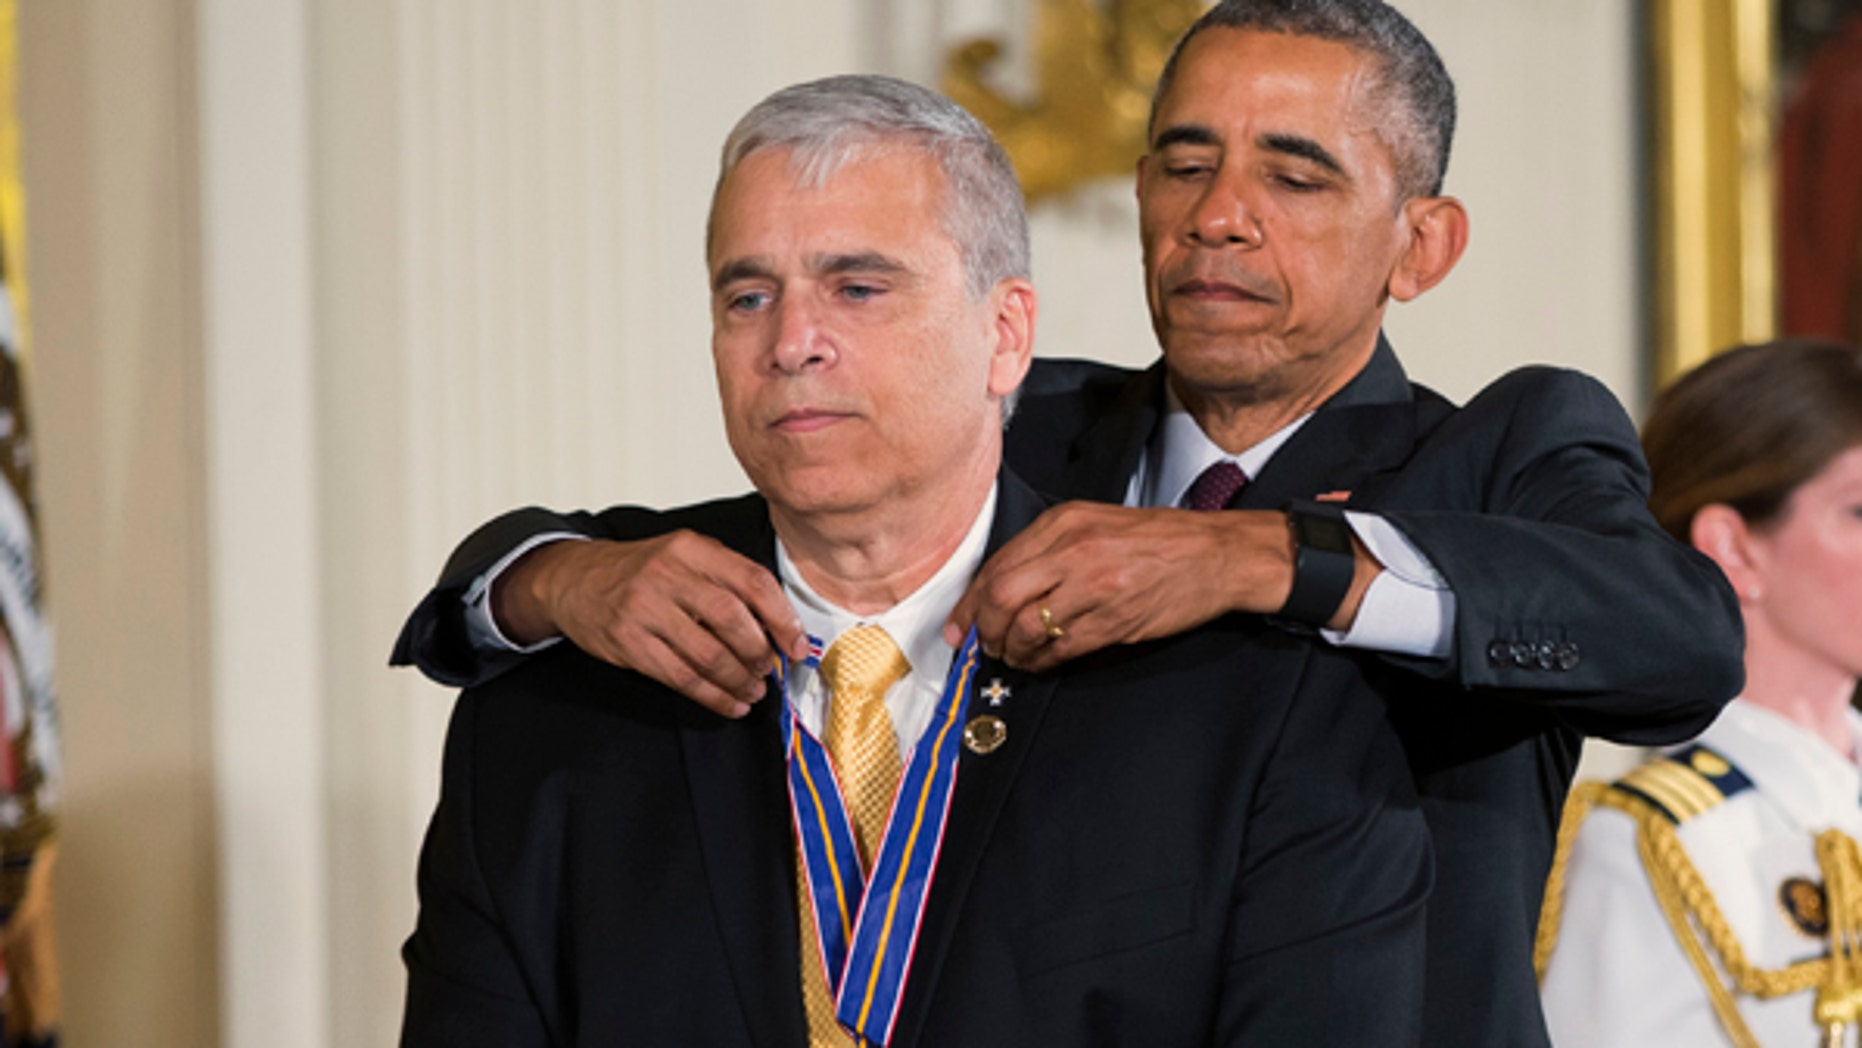 President Obama presents the Medal of Valor to Officer Mario Gutierrez, of the Miami-Dade Police Department, Fla.